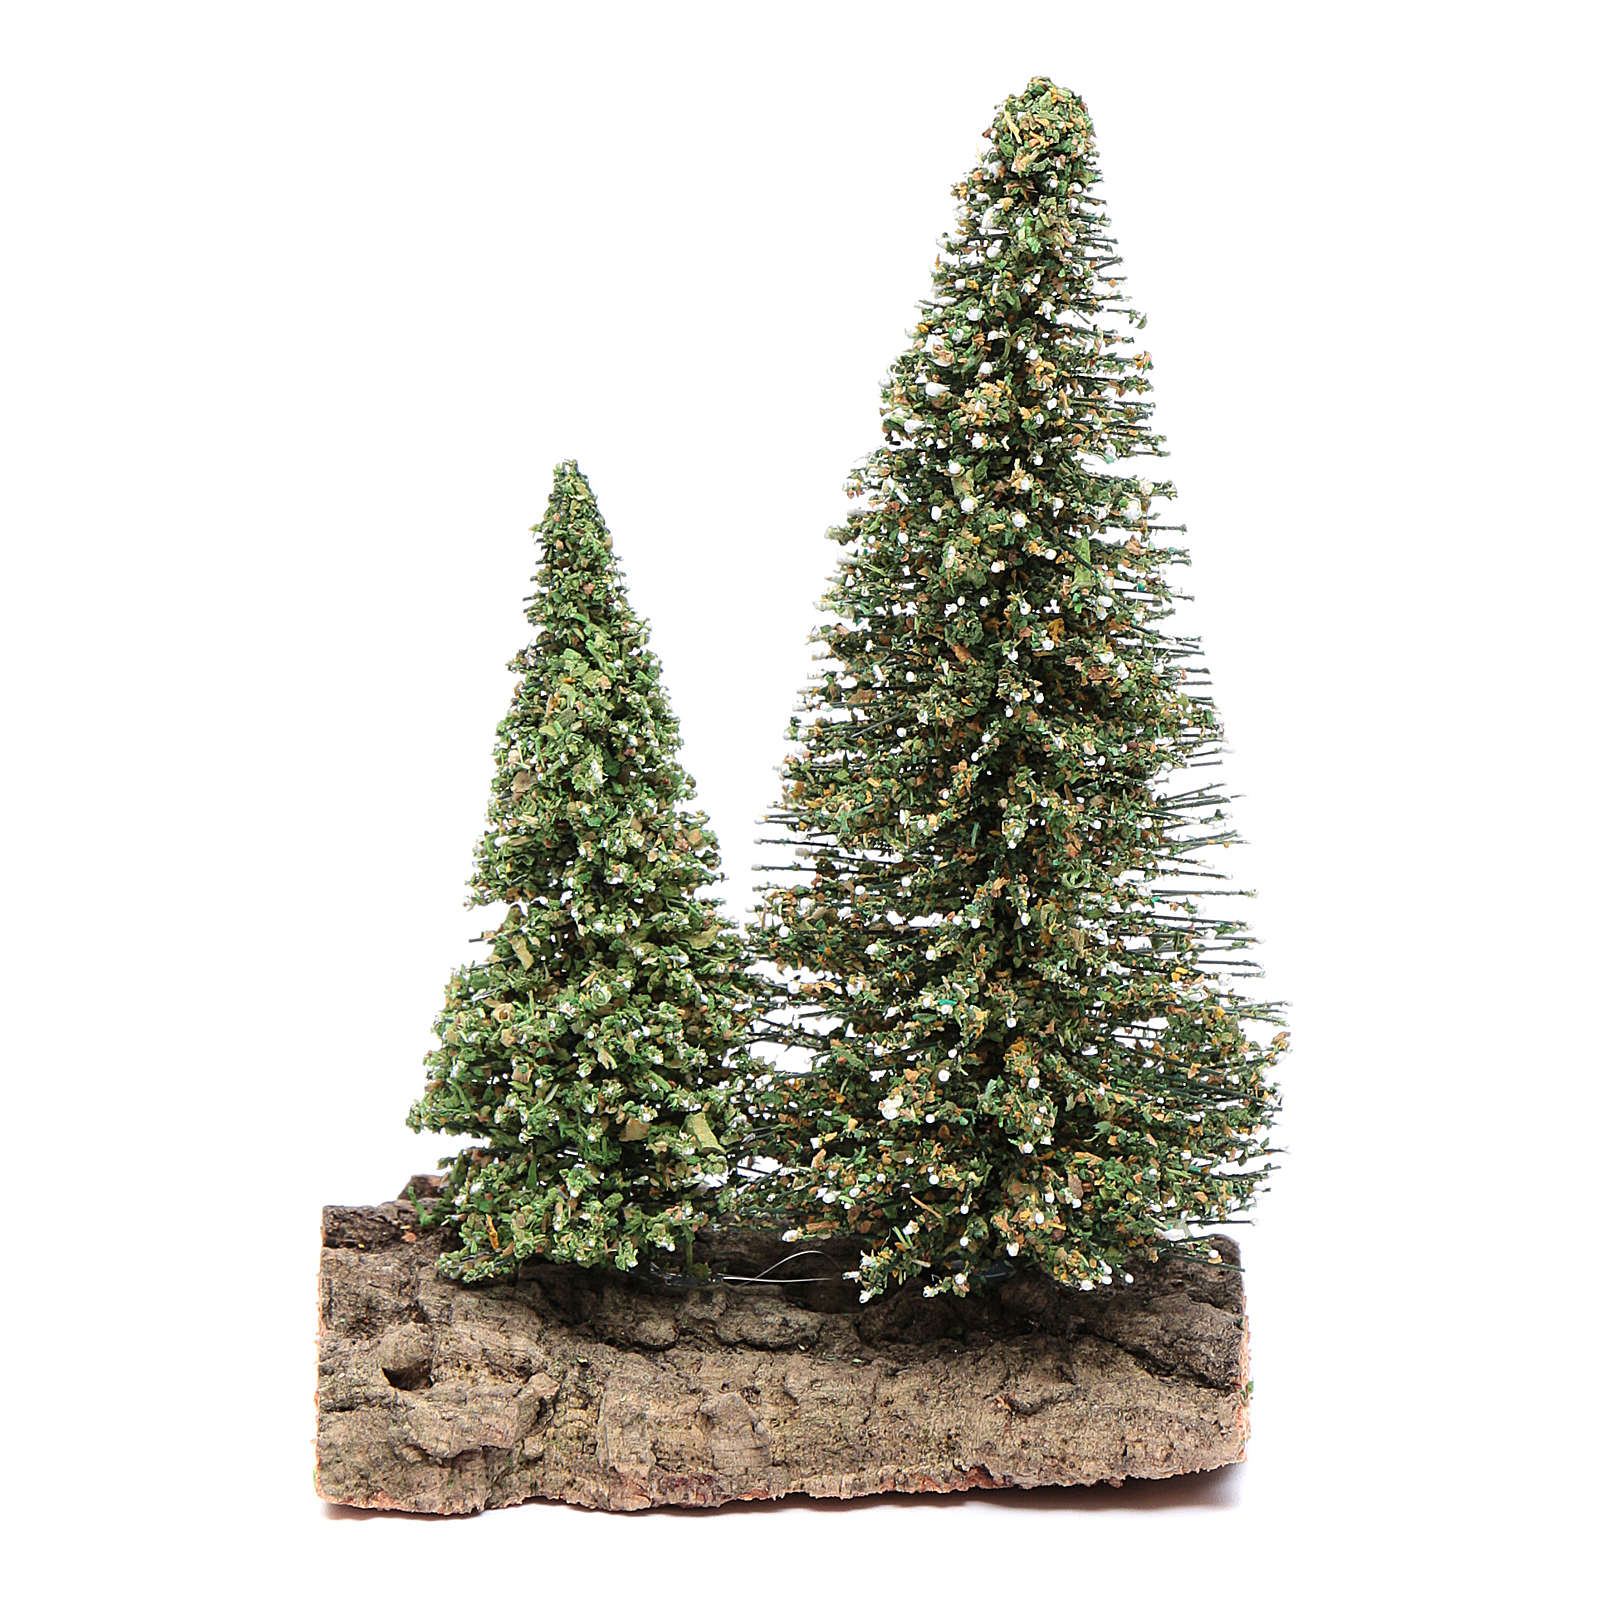 Nativity scene setting two pines on rock 4